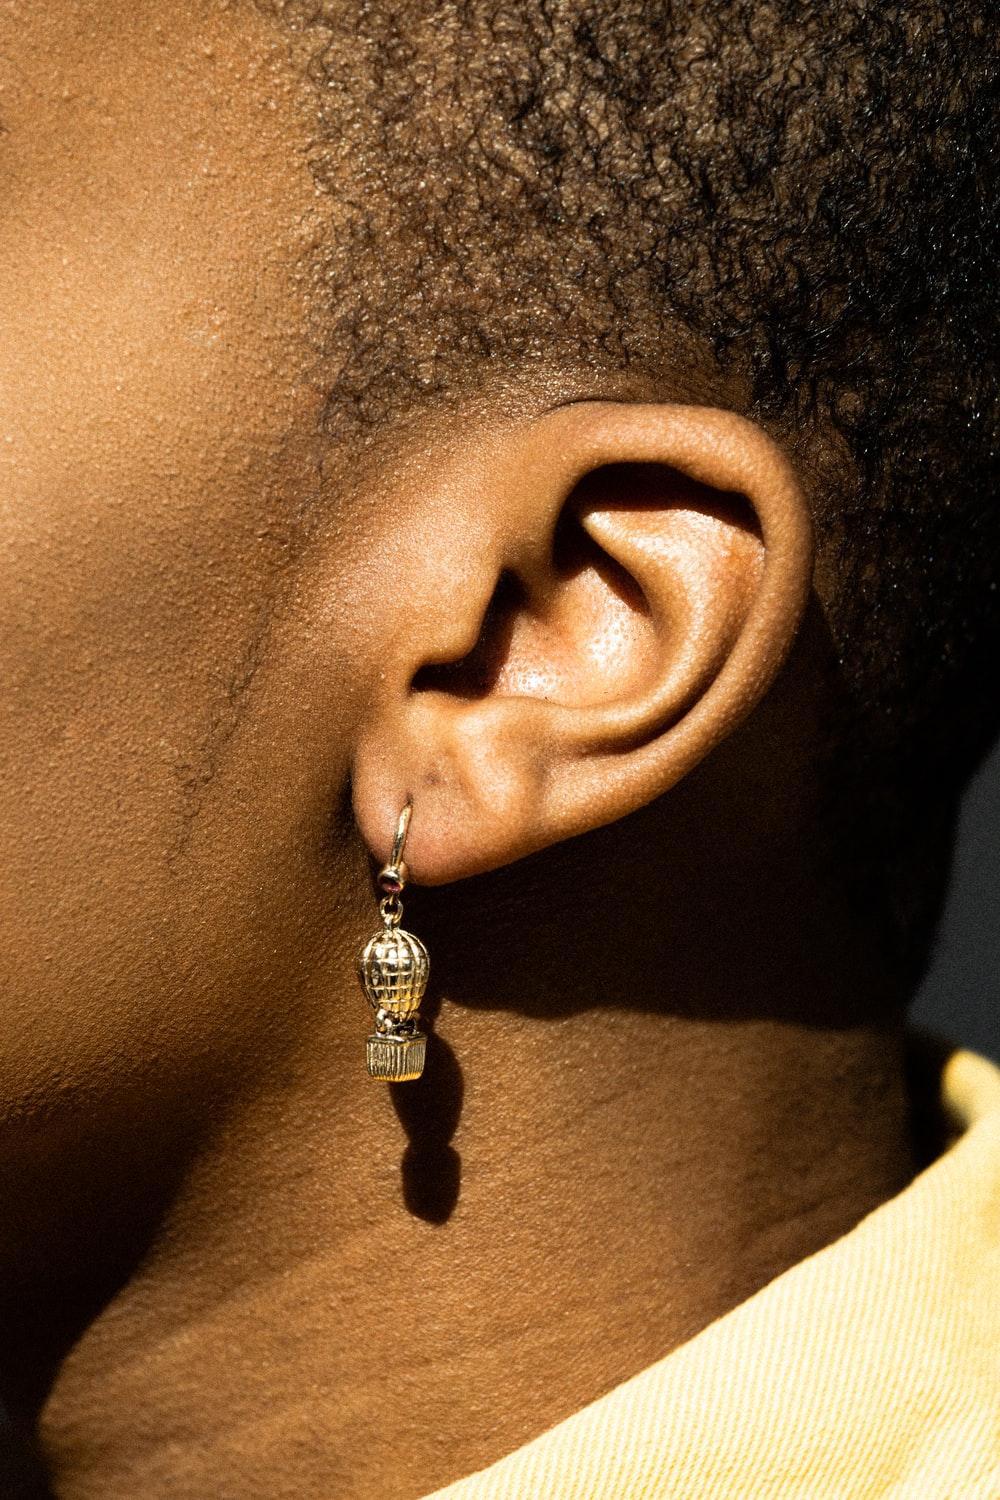 woman wearing silver and black earring